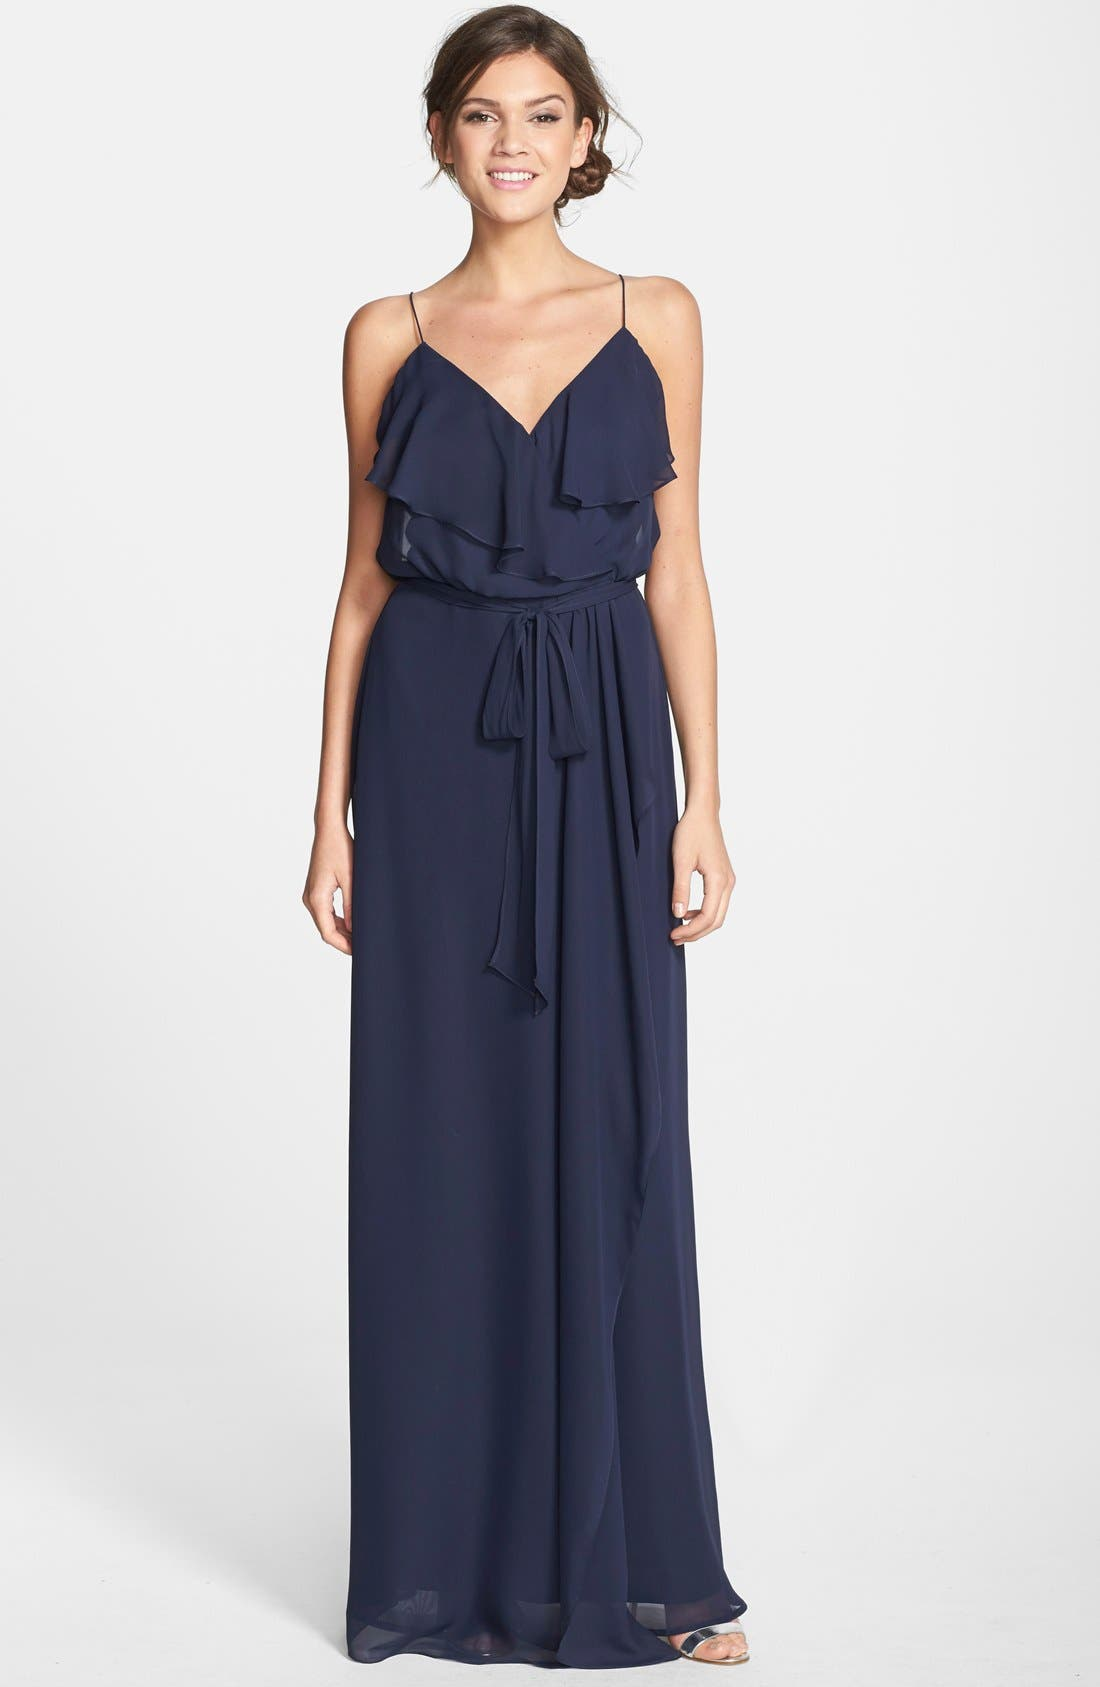 'Drew' Ruffle Front Chiffon Gown,                             Main thumbnail 7, color,